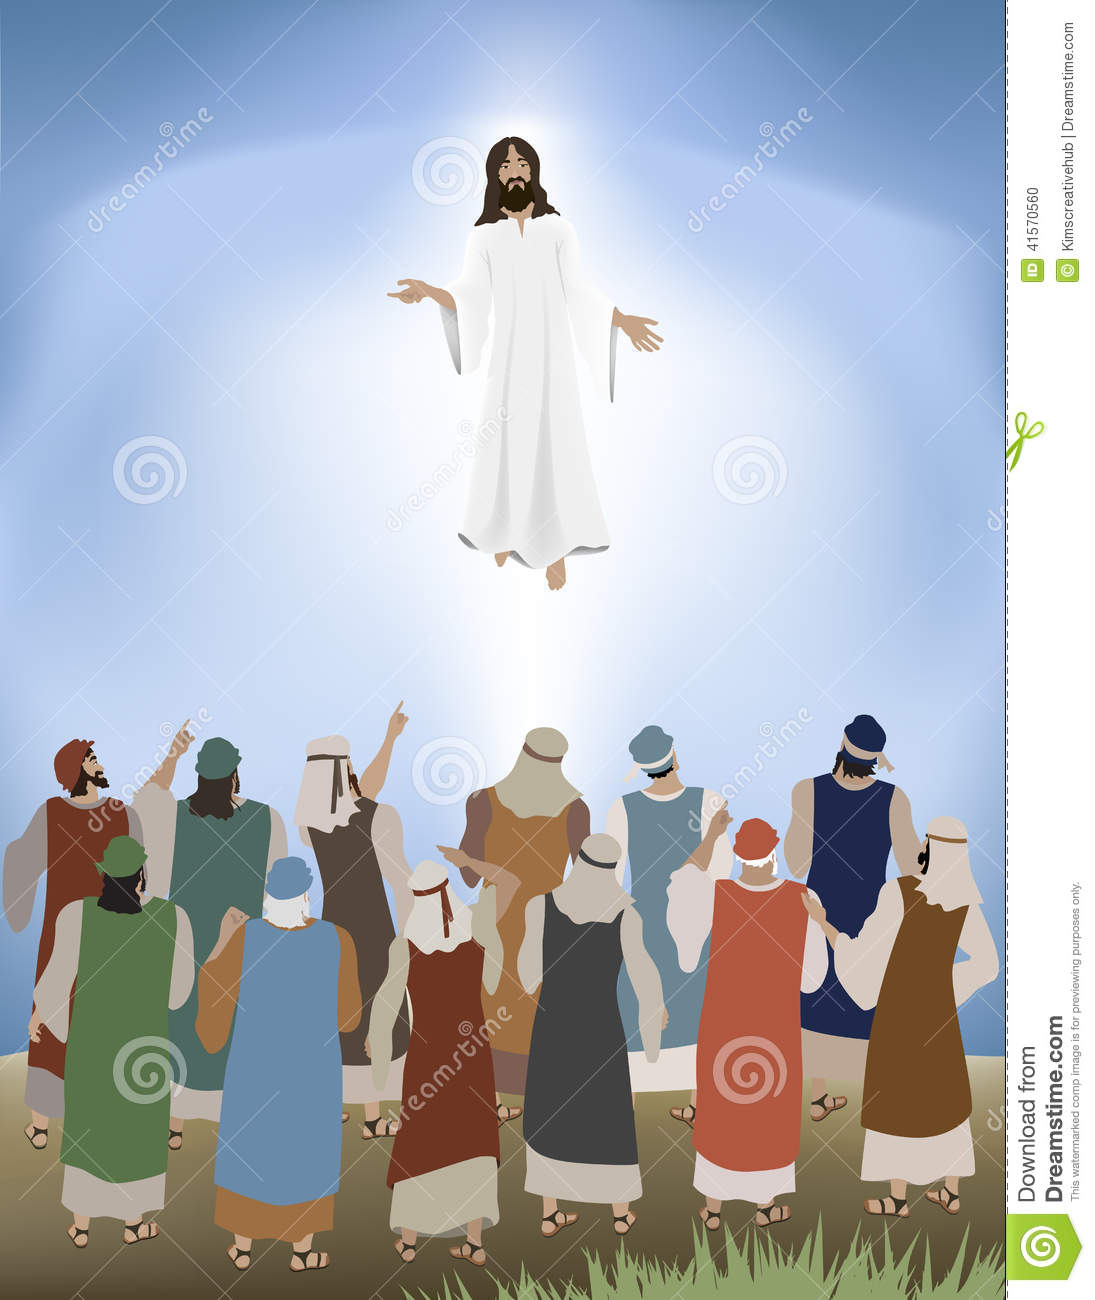 clipart of jesus ascending to heaven - photo #17